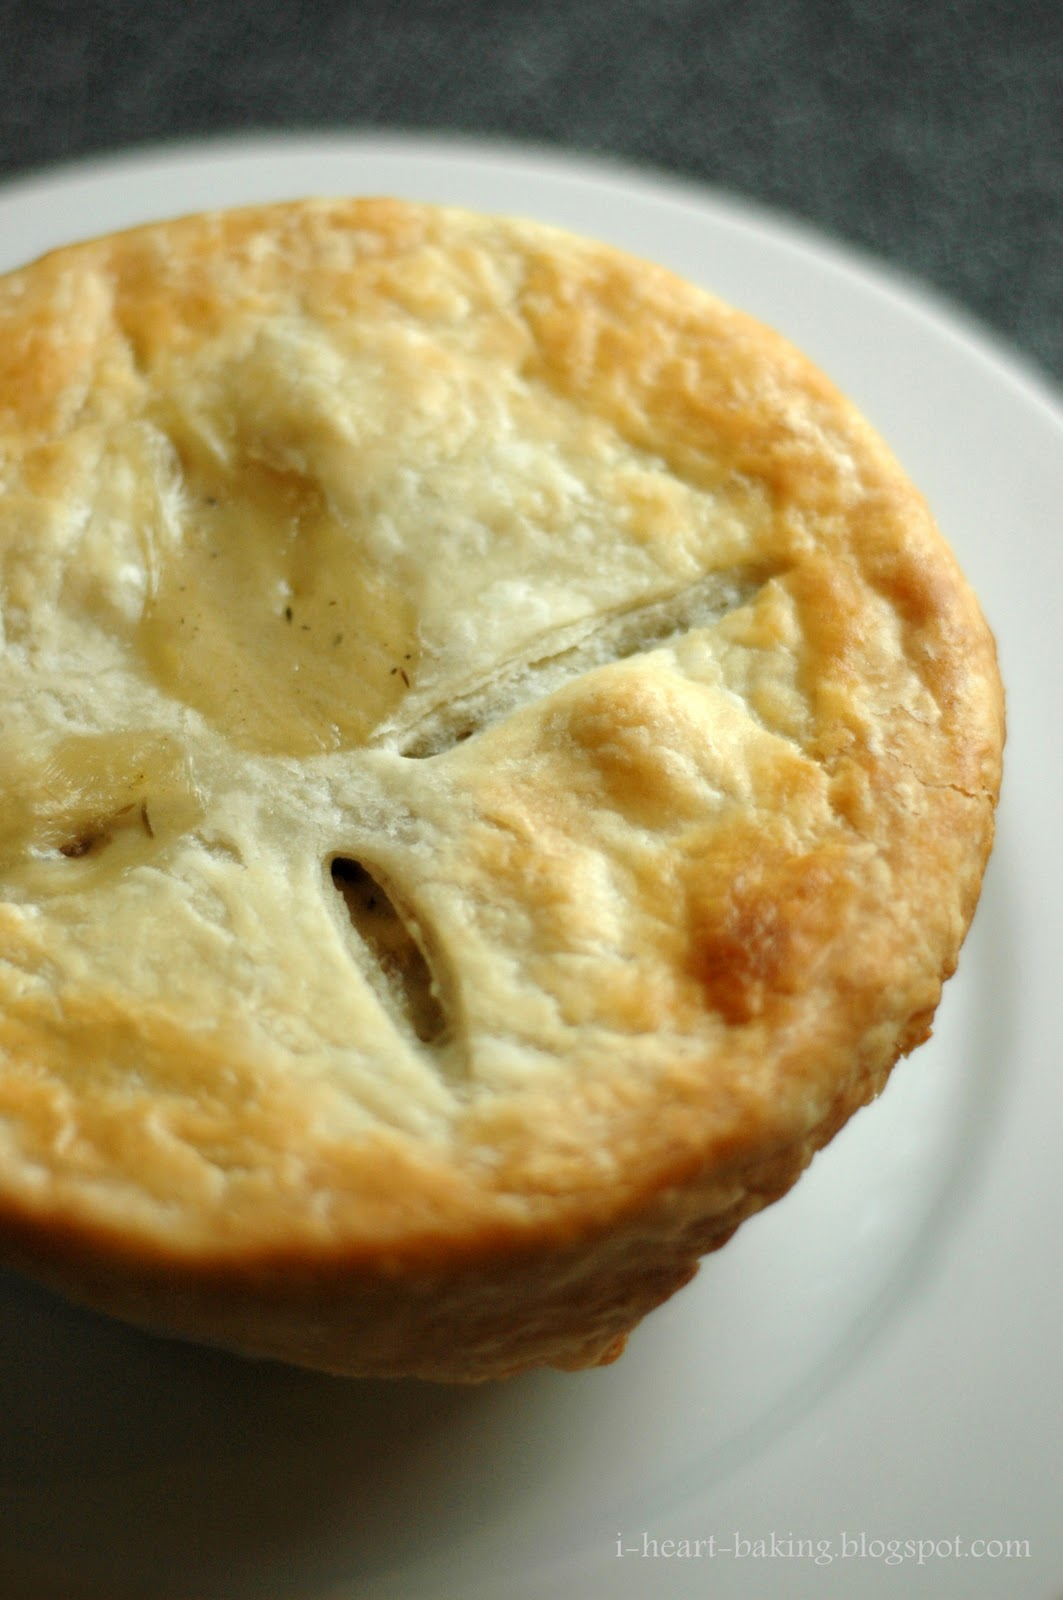 heart baking!: chicken pot pie